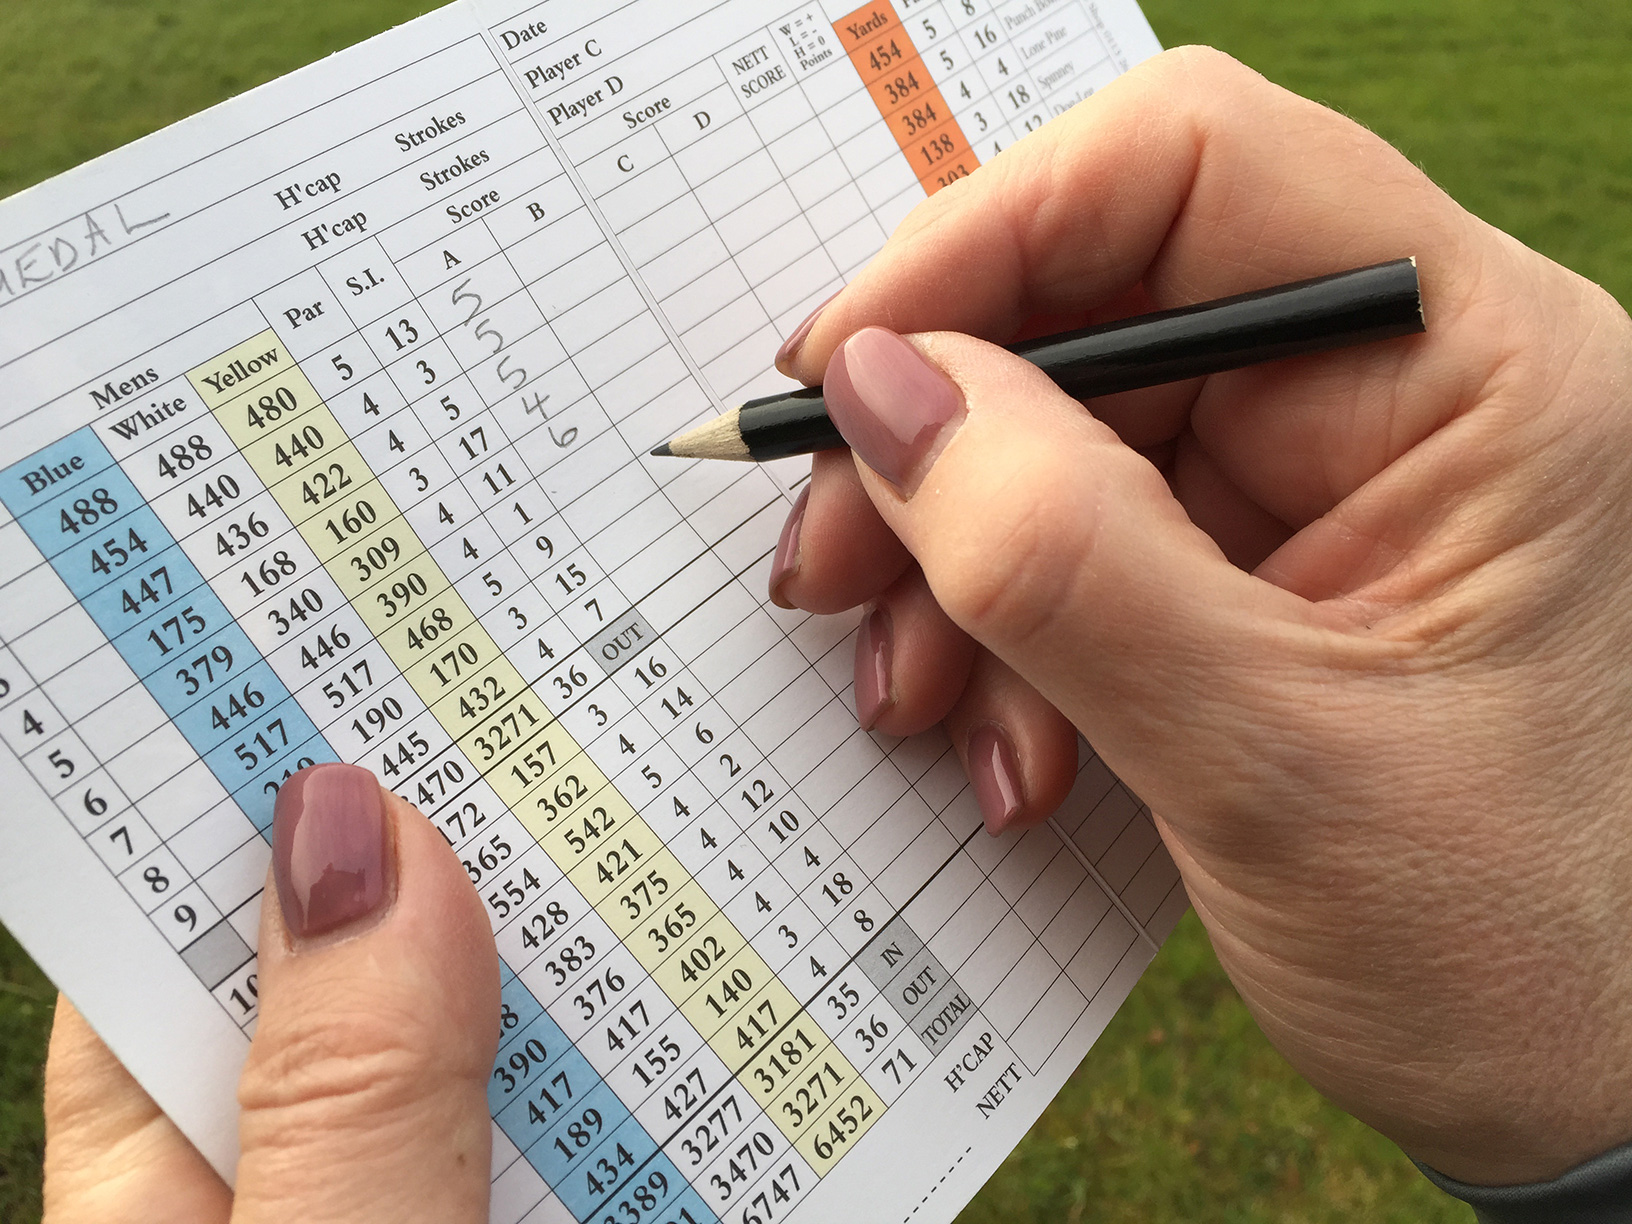 England-Golf's-campaign-will-help-golfers-know-the-score-with-the-World-Handicap-System-1